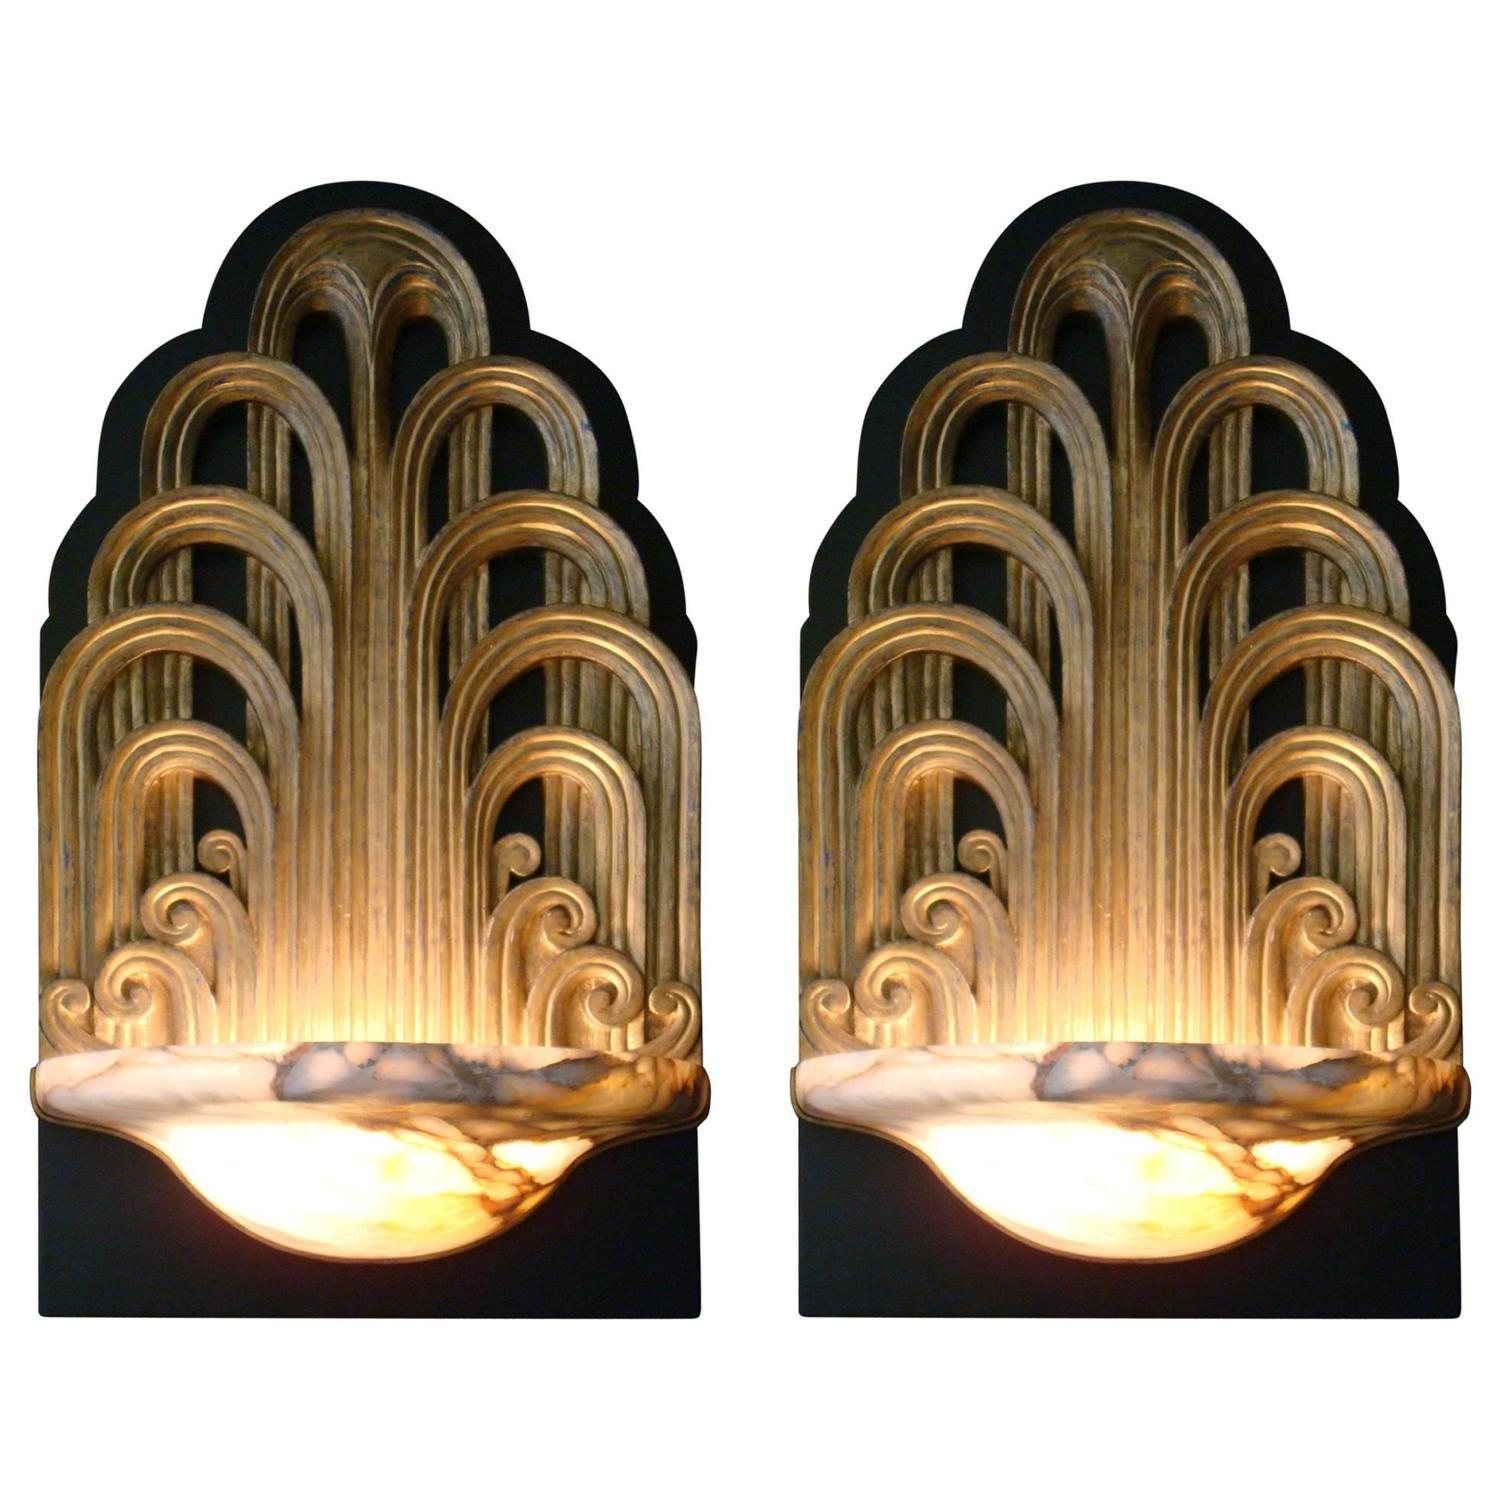 Wall Sconces Theater Lighting : Pair of Art Deco Fountain Sconces Wall Lights Theater Lamps, circa 1930 For Sale at 1stdibs